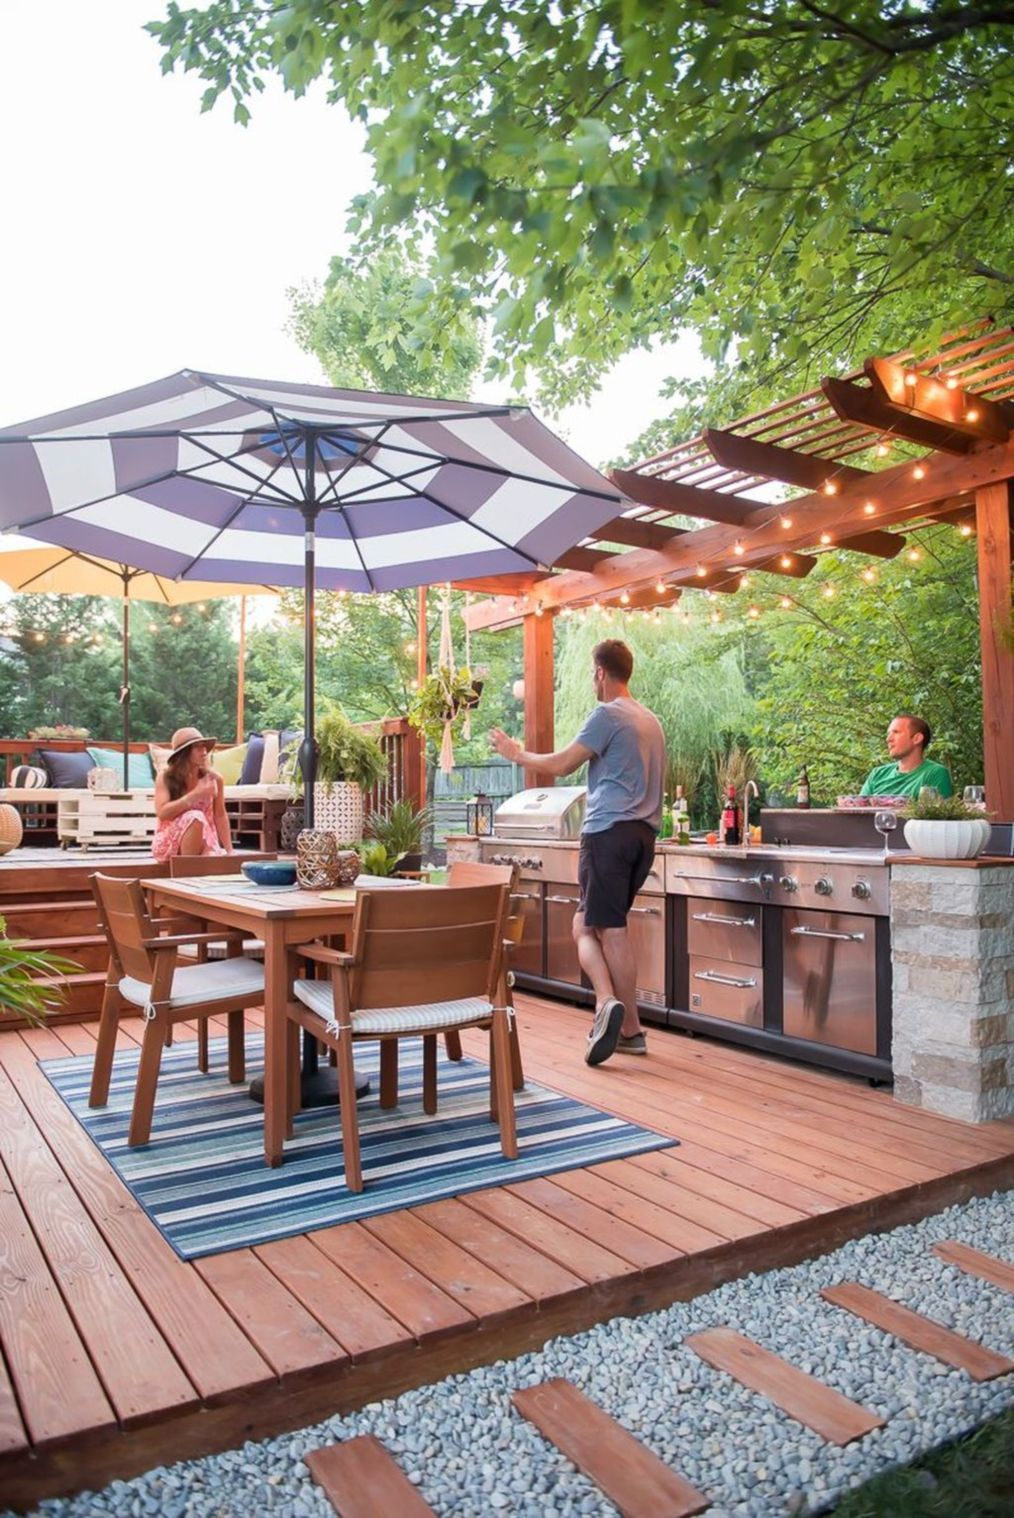 amazing outdoor kitchen ideas to inspire your remodel home design also rh pinterest